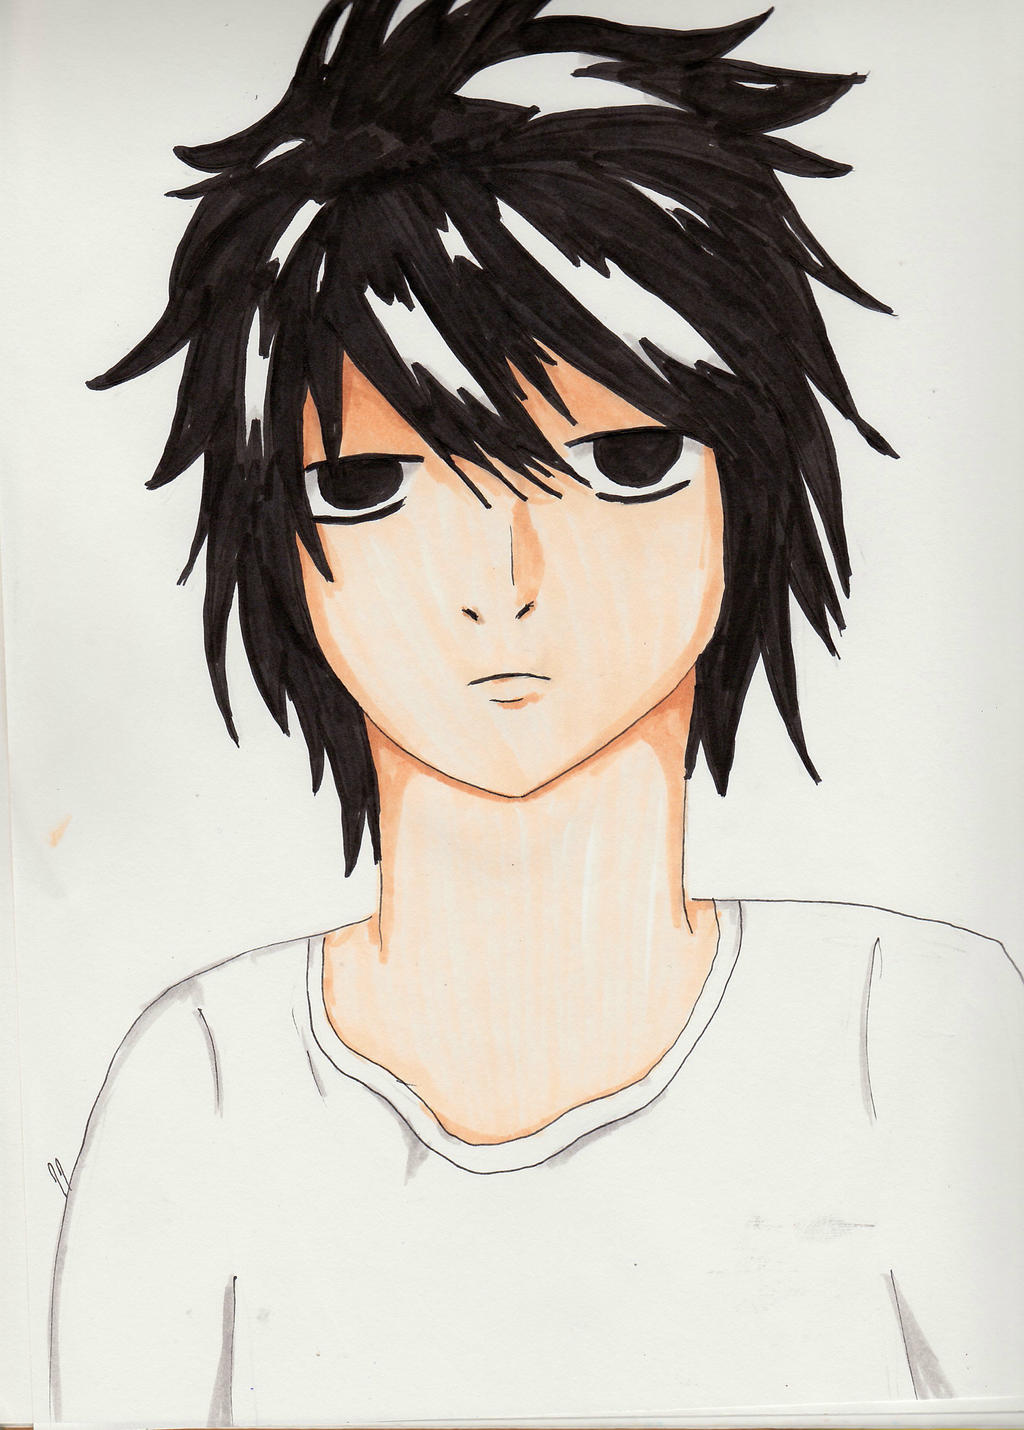 J Anime Character : Day challenge favourite anime character by